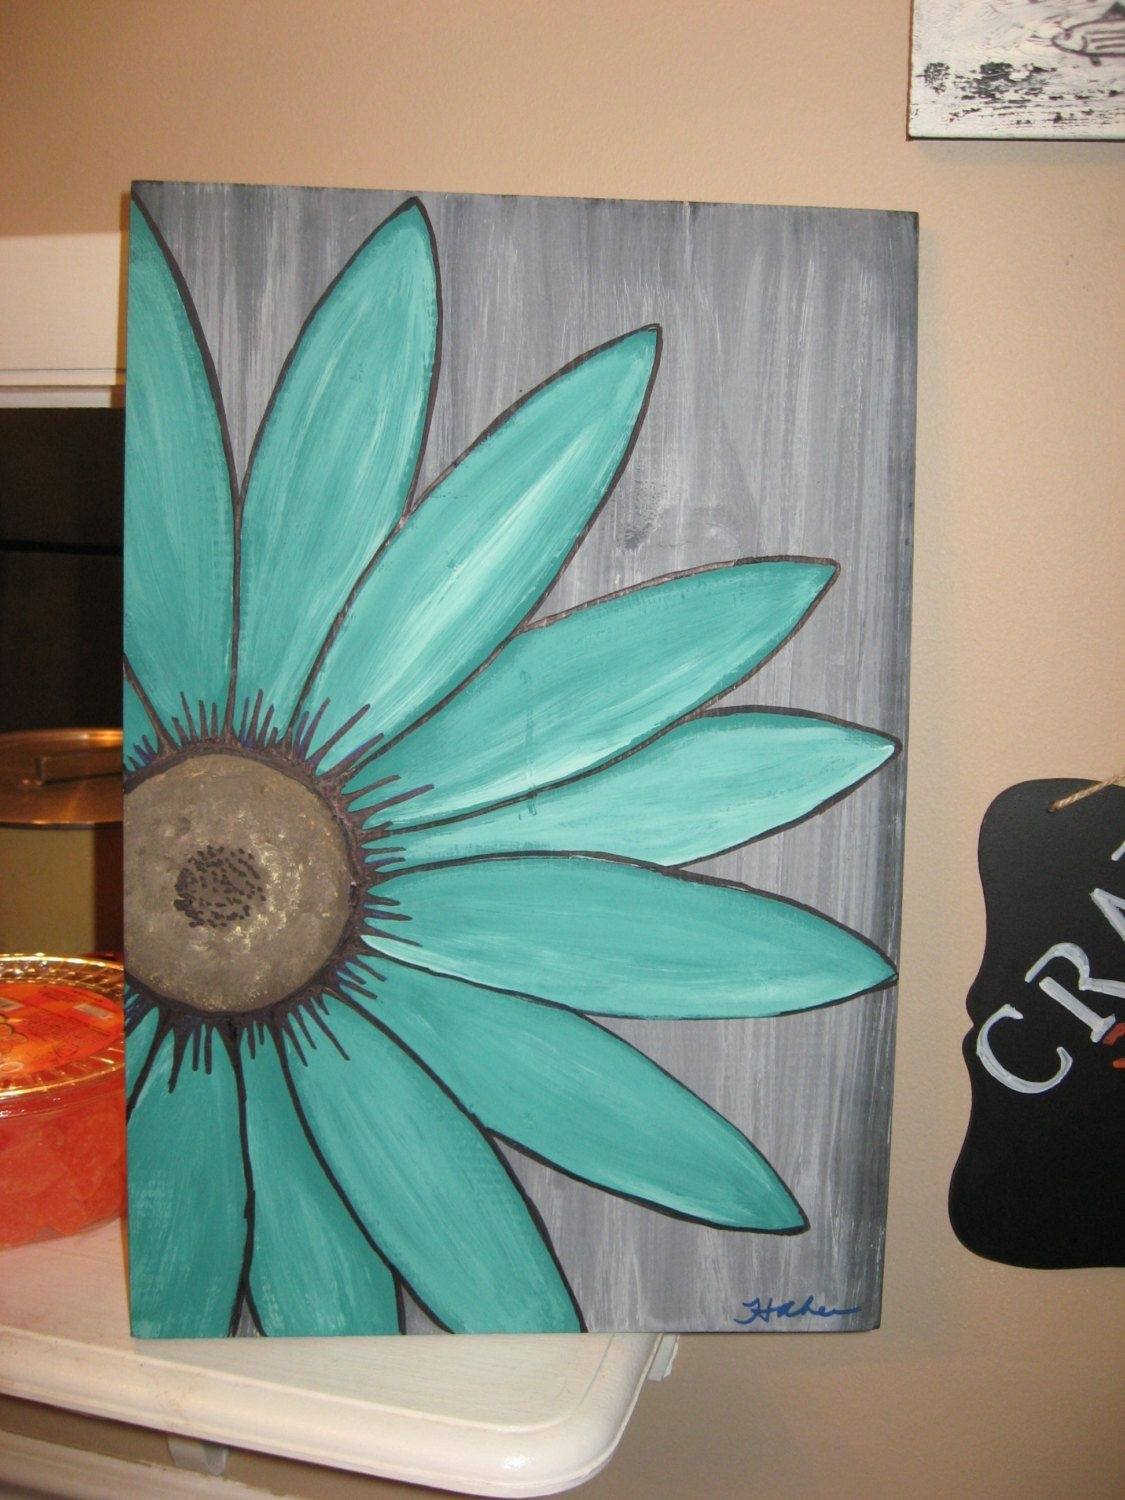 Turquoise Flower Daisy Painting Rustic Flower Wood Flower Wall Art Throughout Most Recent Turquoise Wall Art (View 15 of 20)